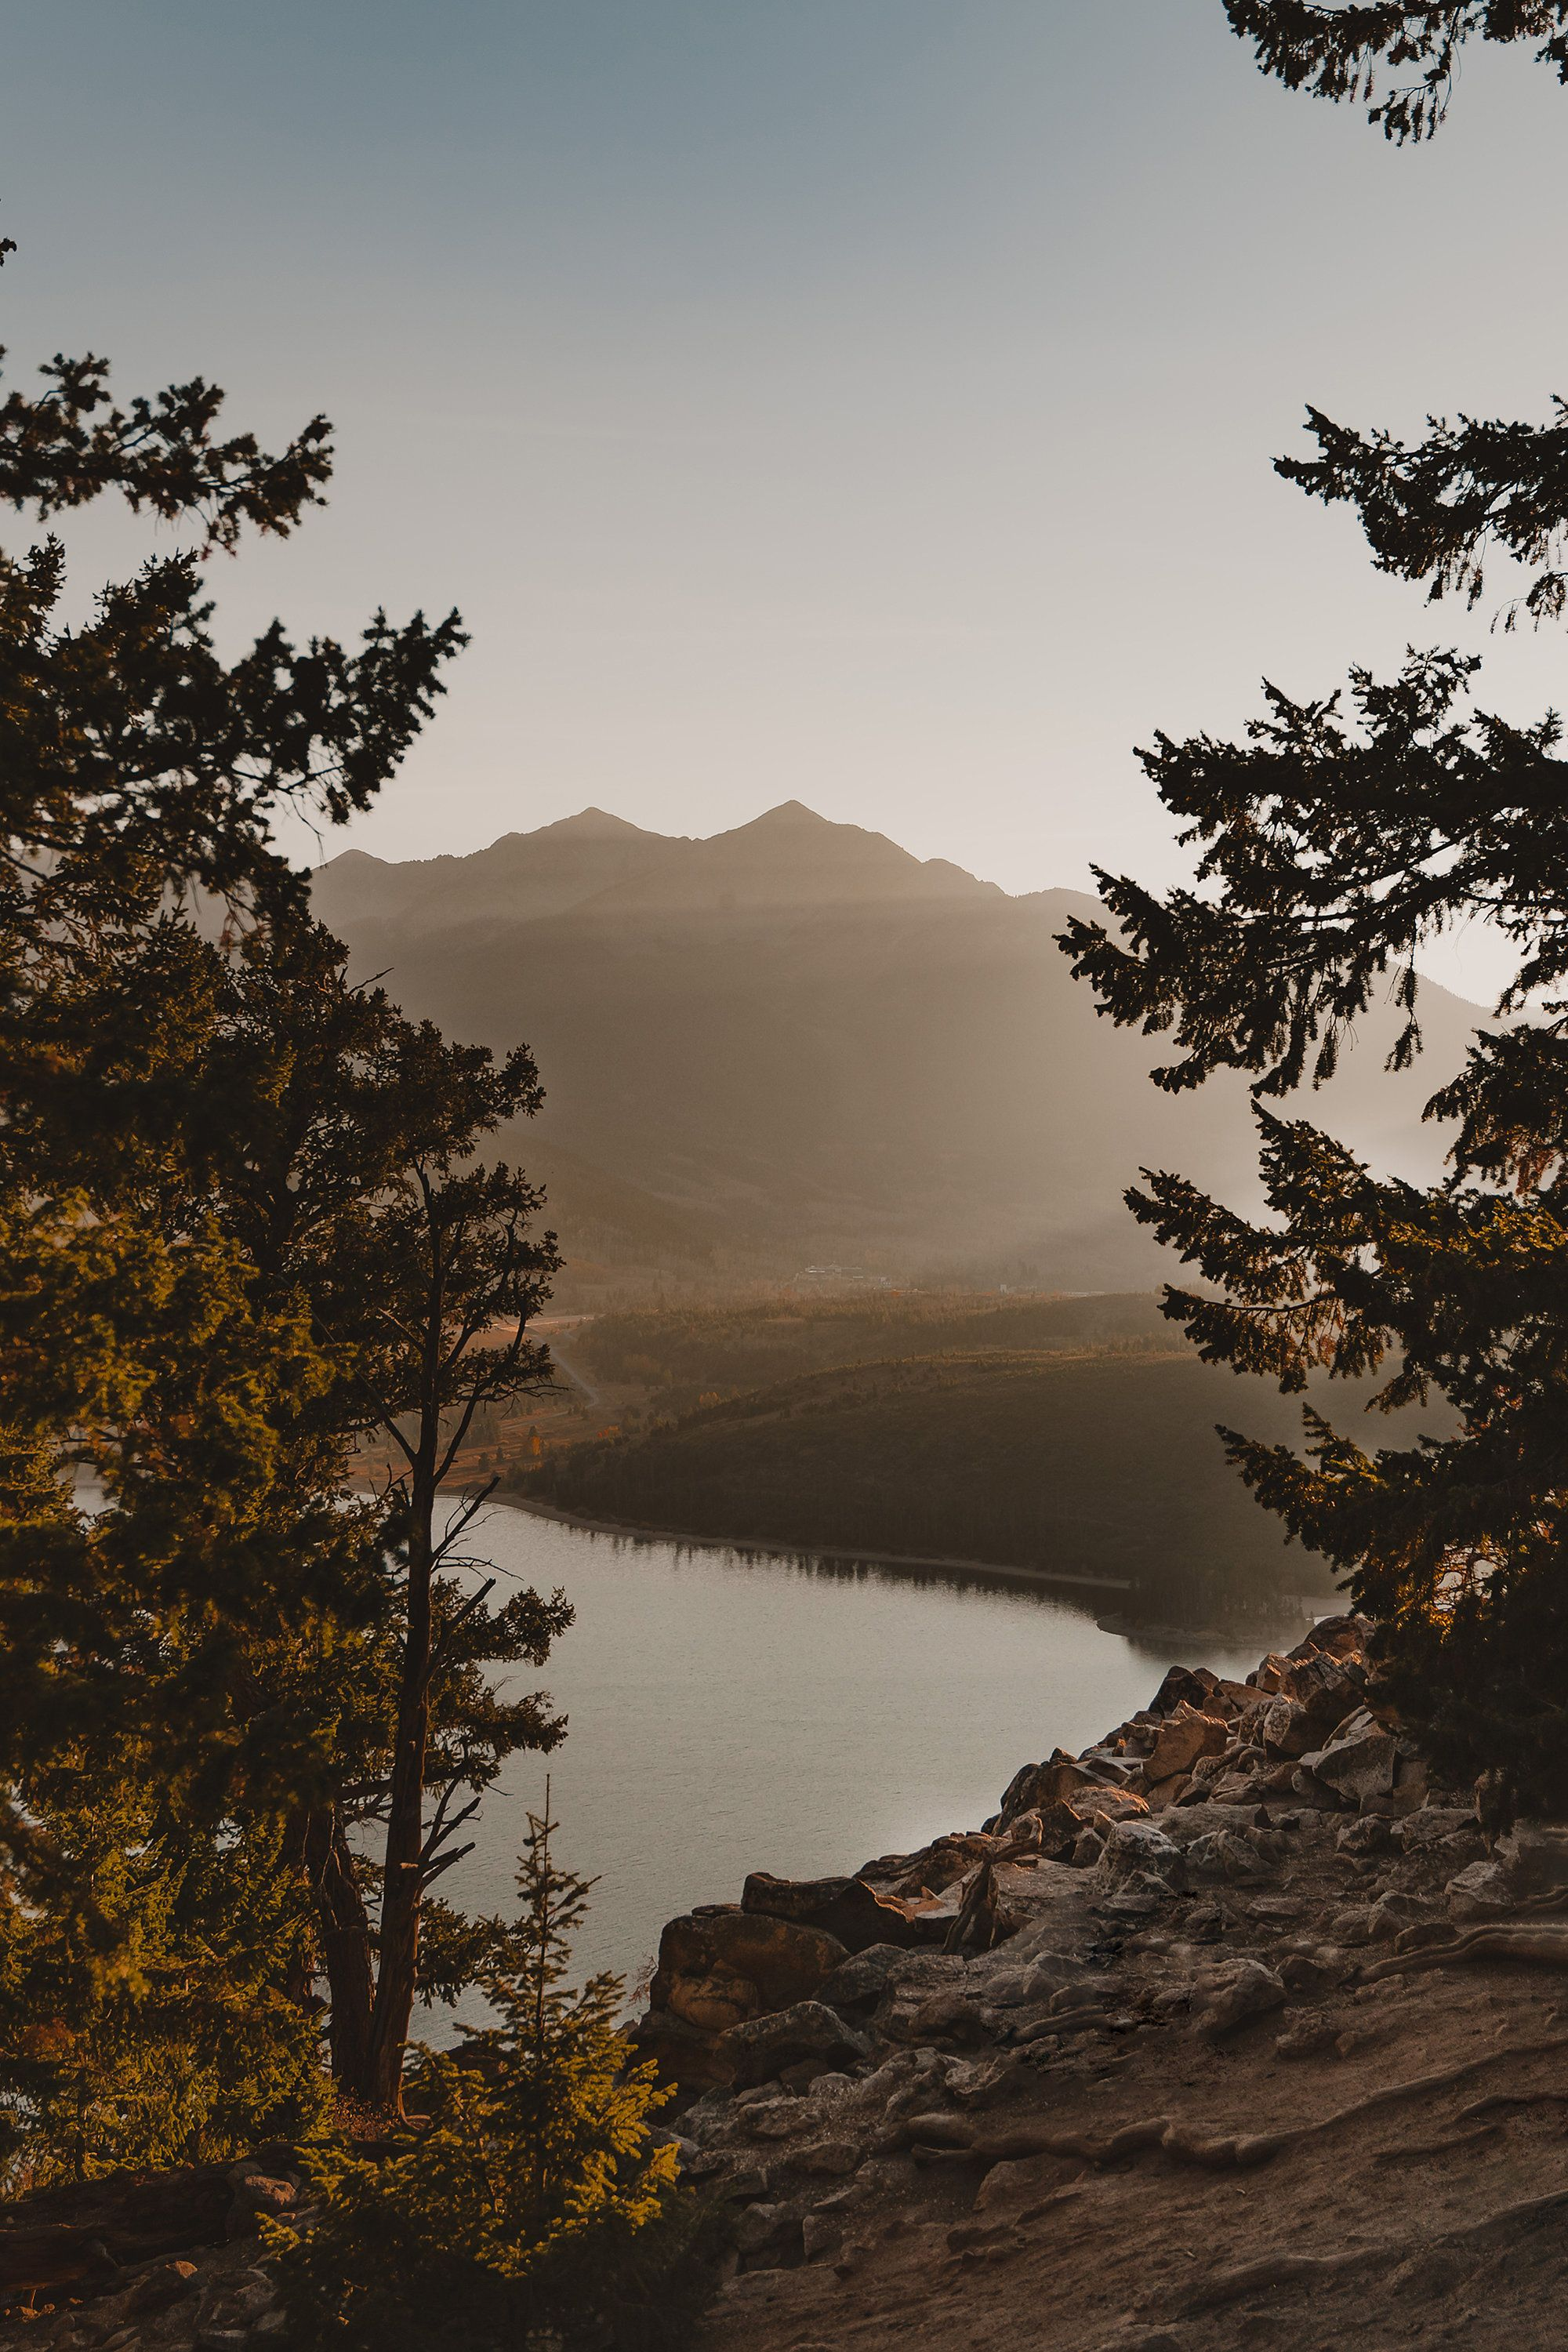 Read the full title Sapphire Point Overlook, Travel Photography, Lake Dillon, Colorado Mountains, Digital Print, Nature Sunset Photo